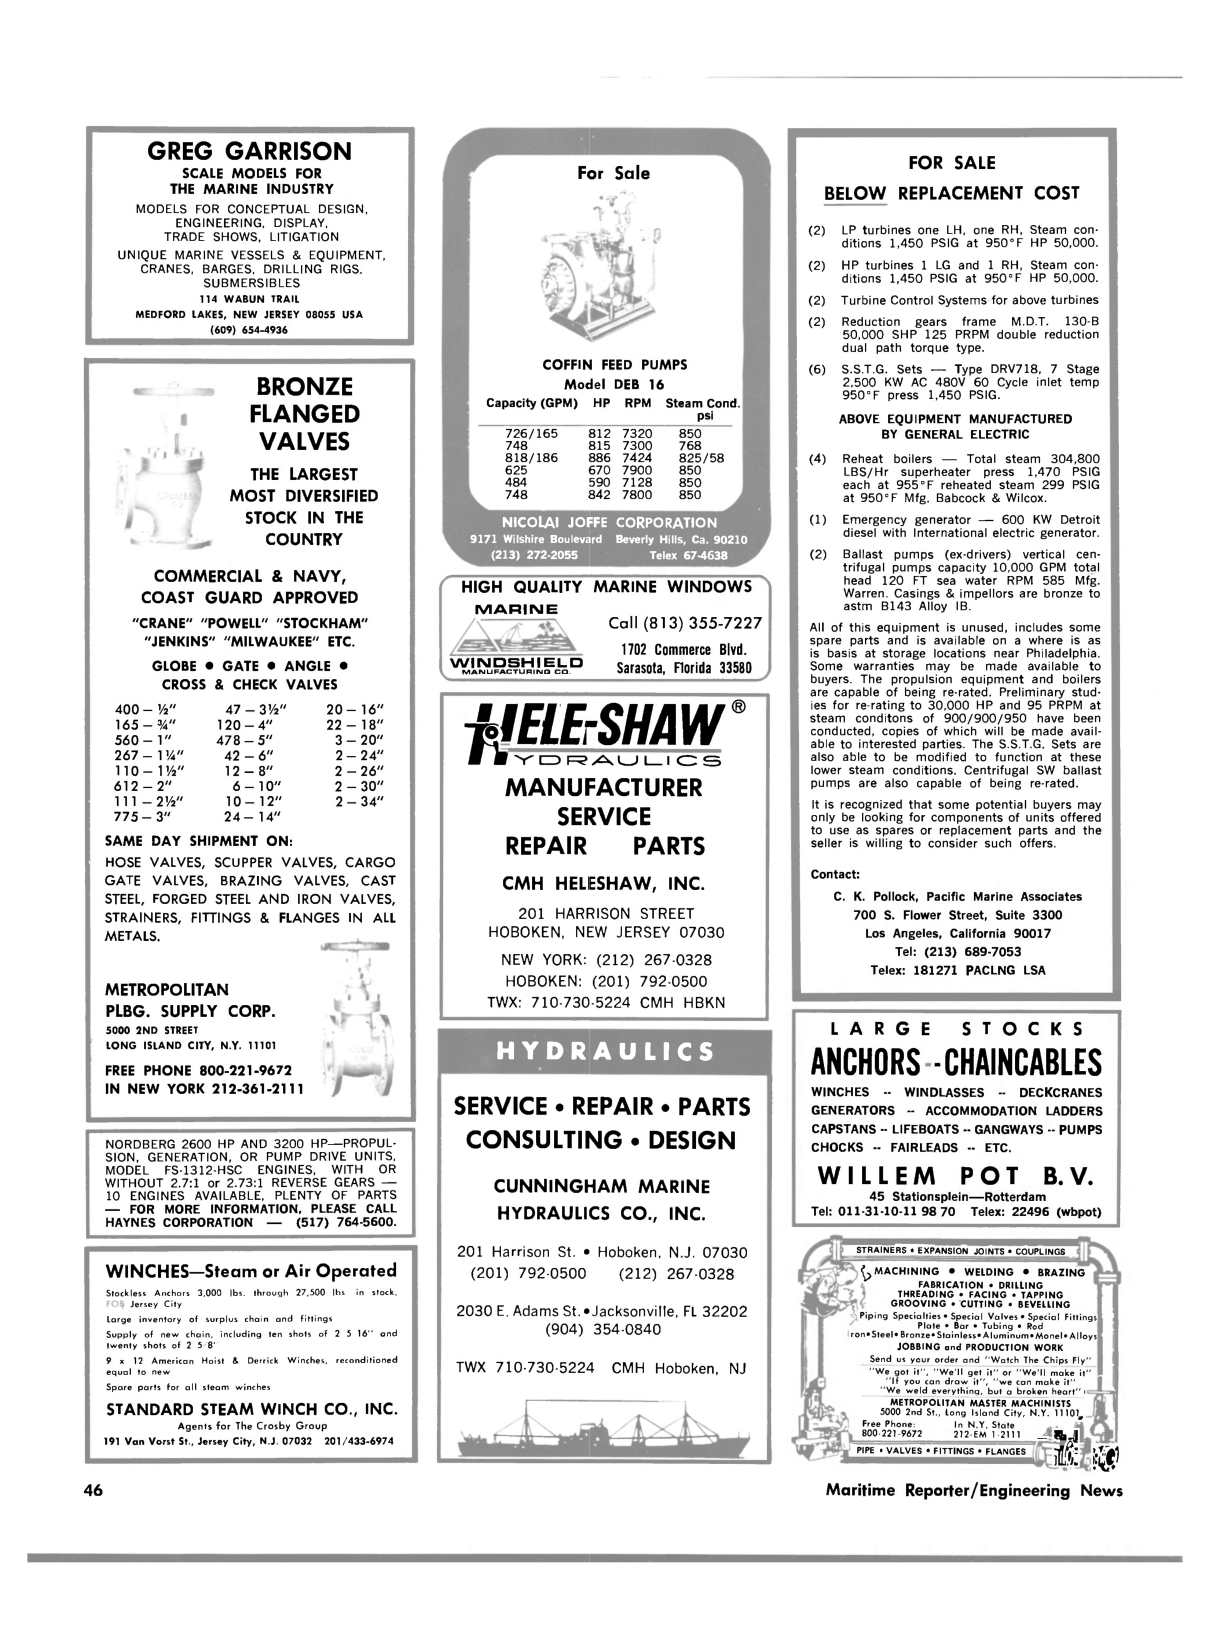 ViewMaritime Reporter and Engineering News (February 15, 1983)